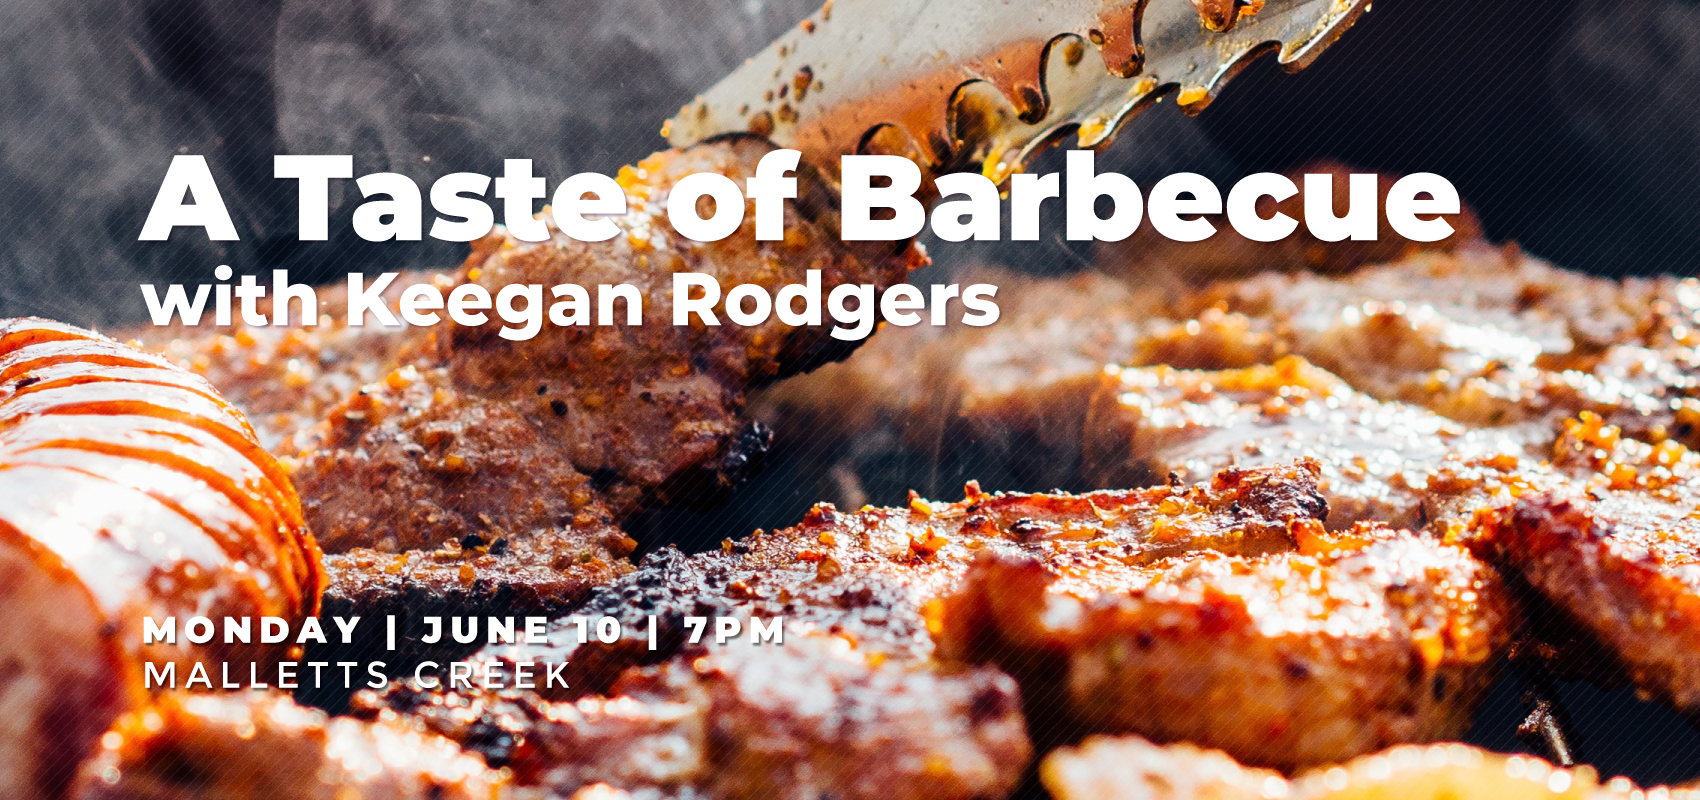 A Taste of Barbecue - Monday, June 10. .